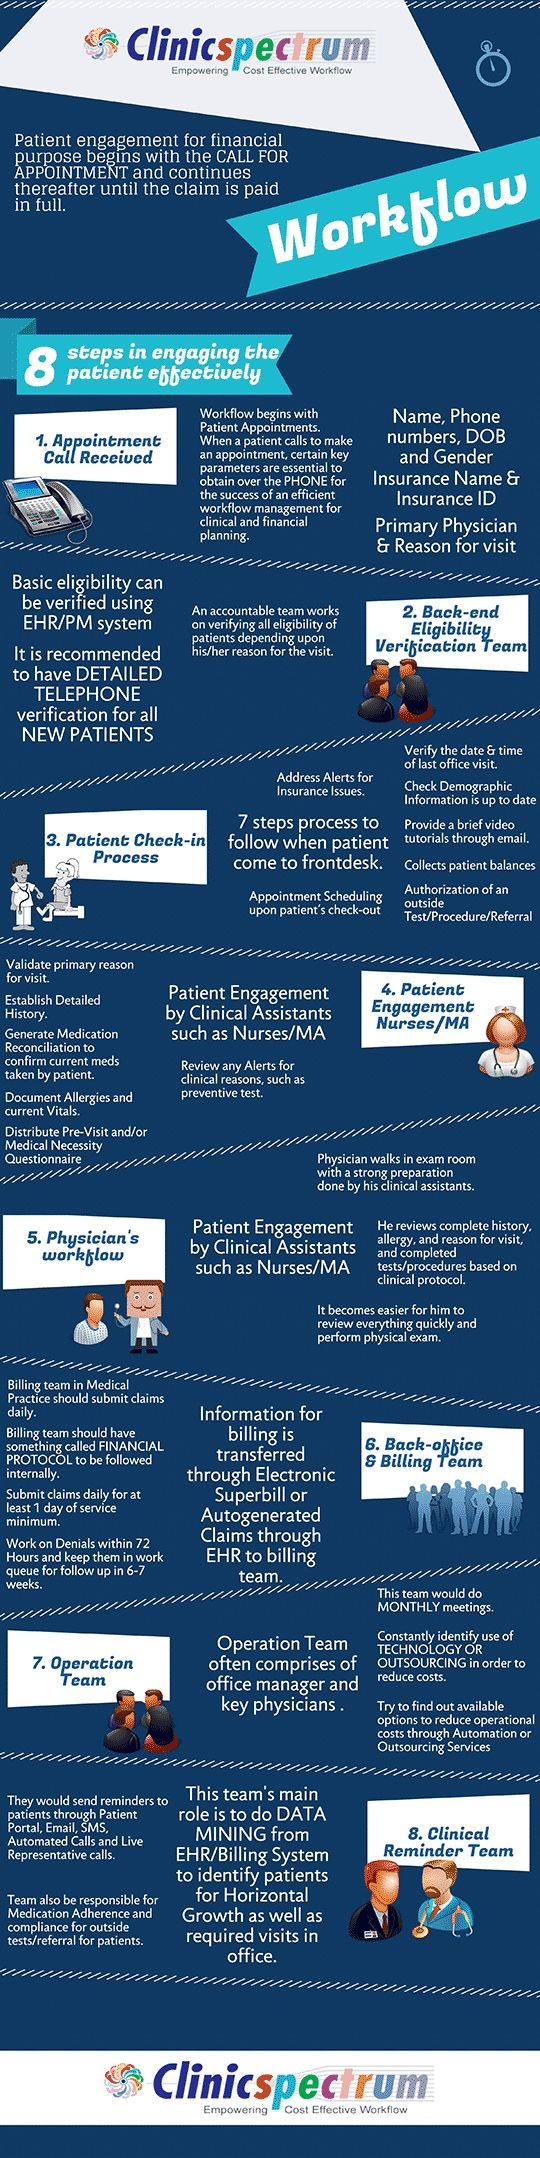 Ideal Electronic Health Record Workflow #EHR